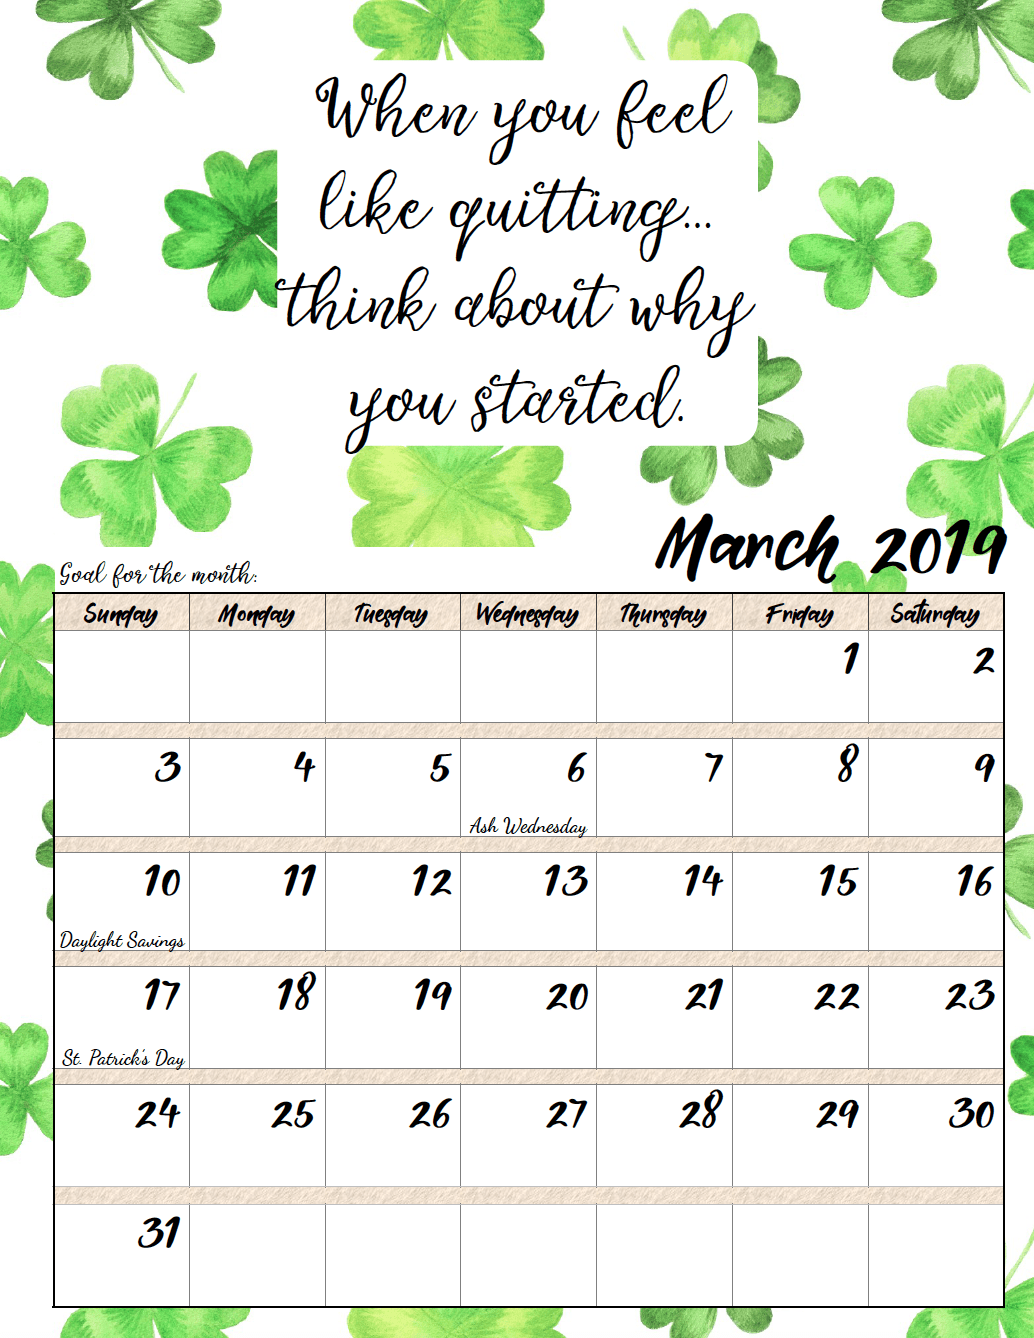 March. FREE Printable 2019 Monthly Motivational Calendars. Space for setting goals, different motivational quote each month, holidays marked. #free #freeprintable #printable #calendar #motivation